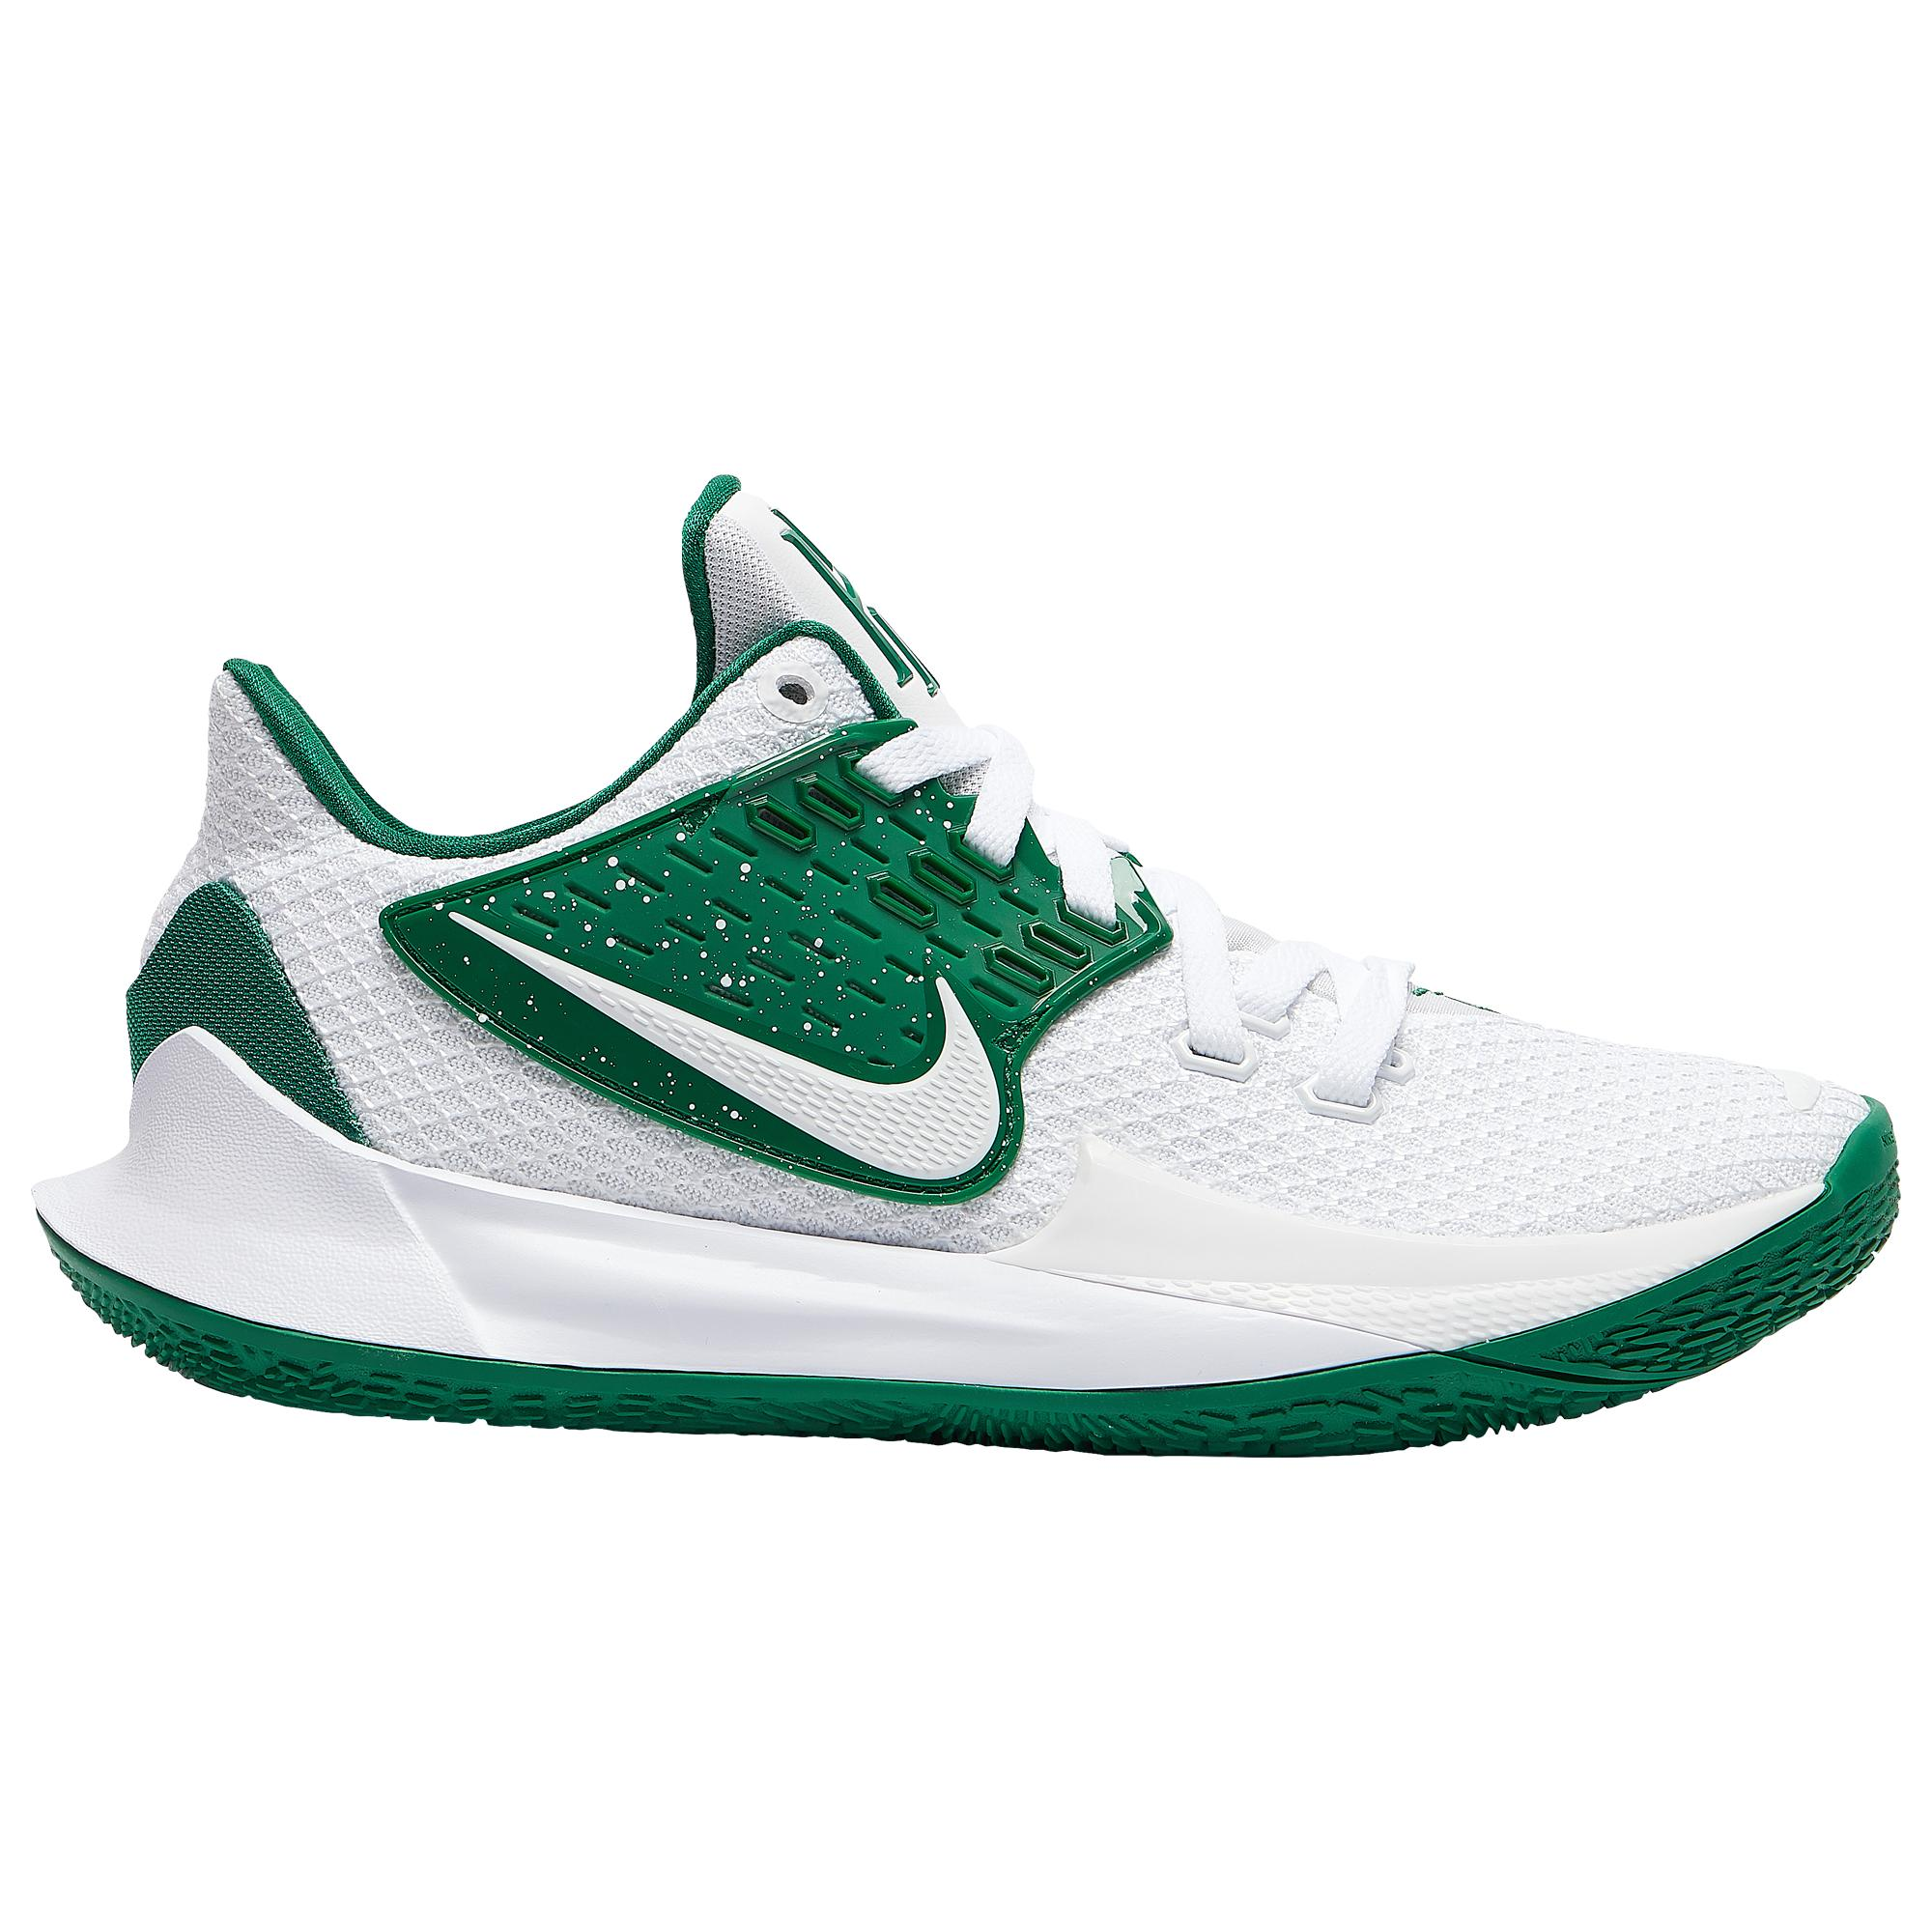 Nike Kyrie Low 2 in Green for Men